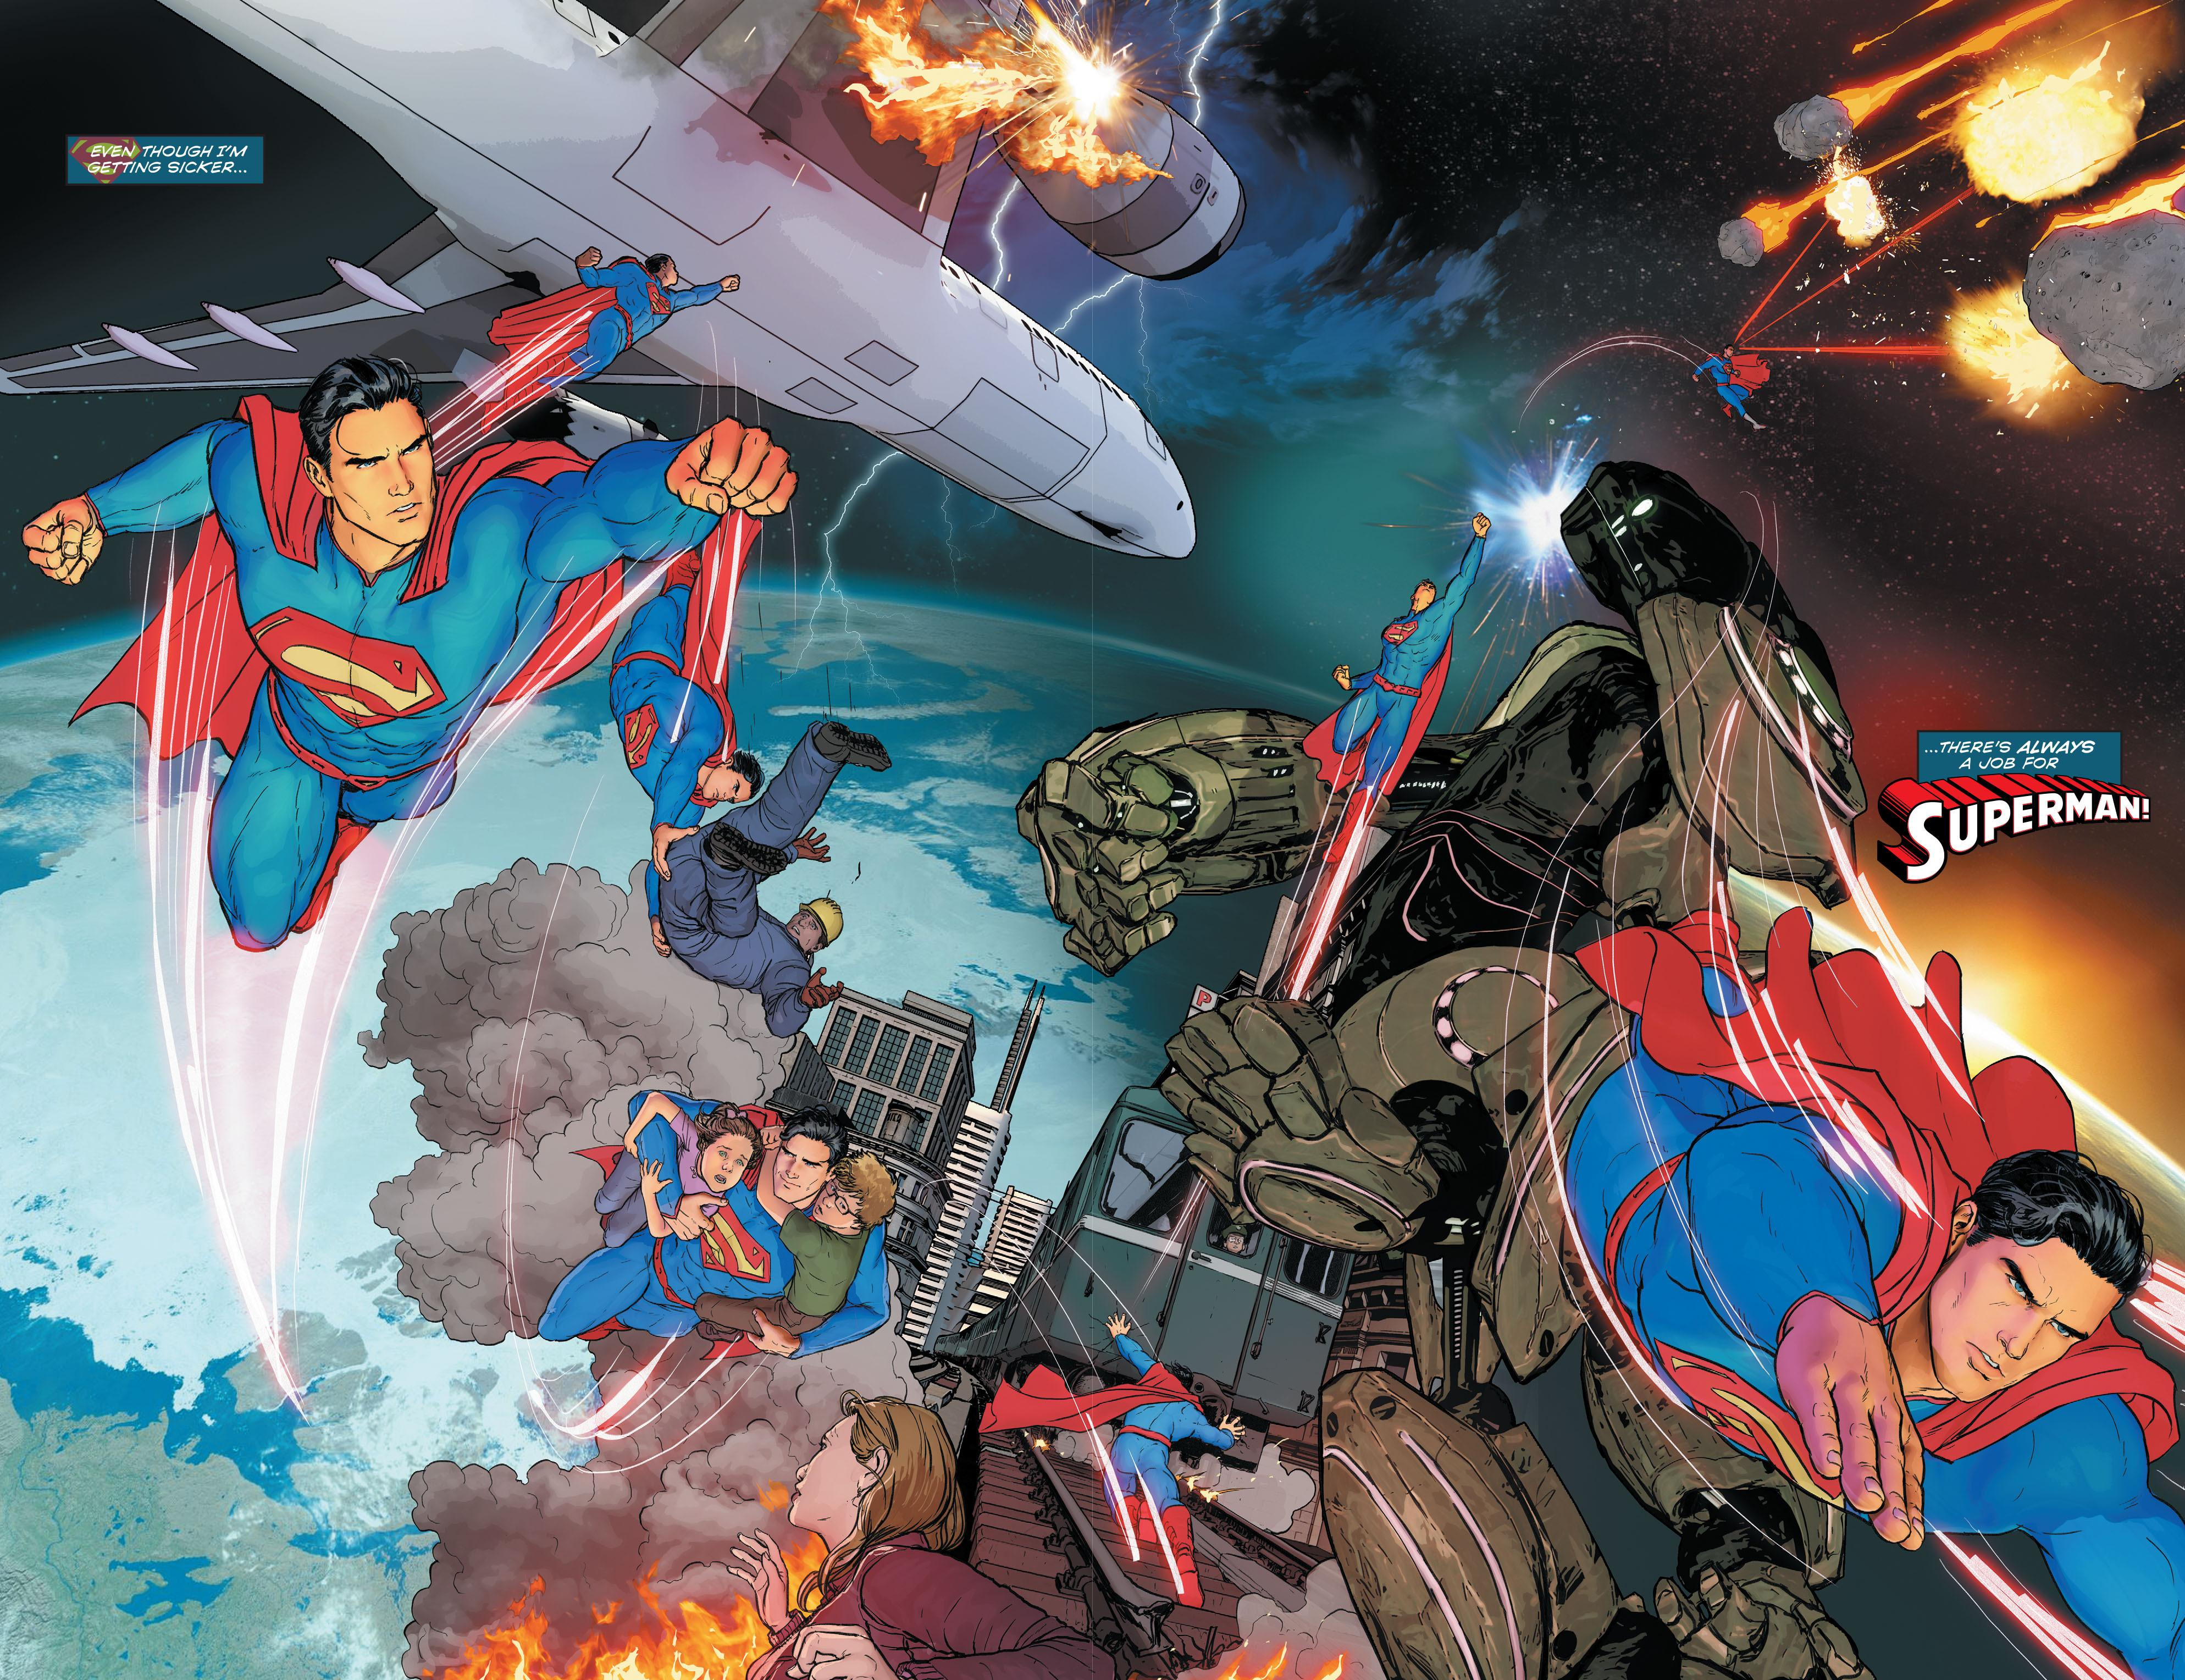 SupermanThe Final Days of Superman review